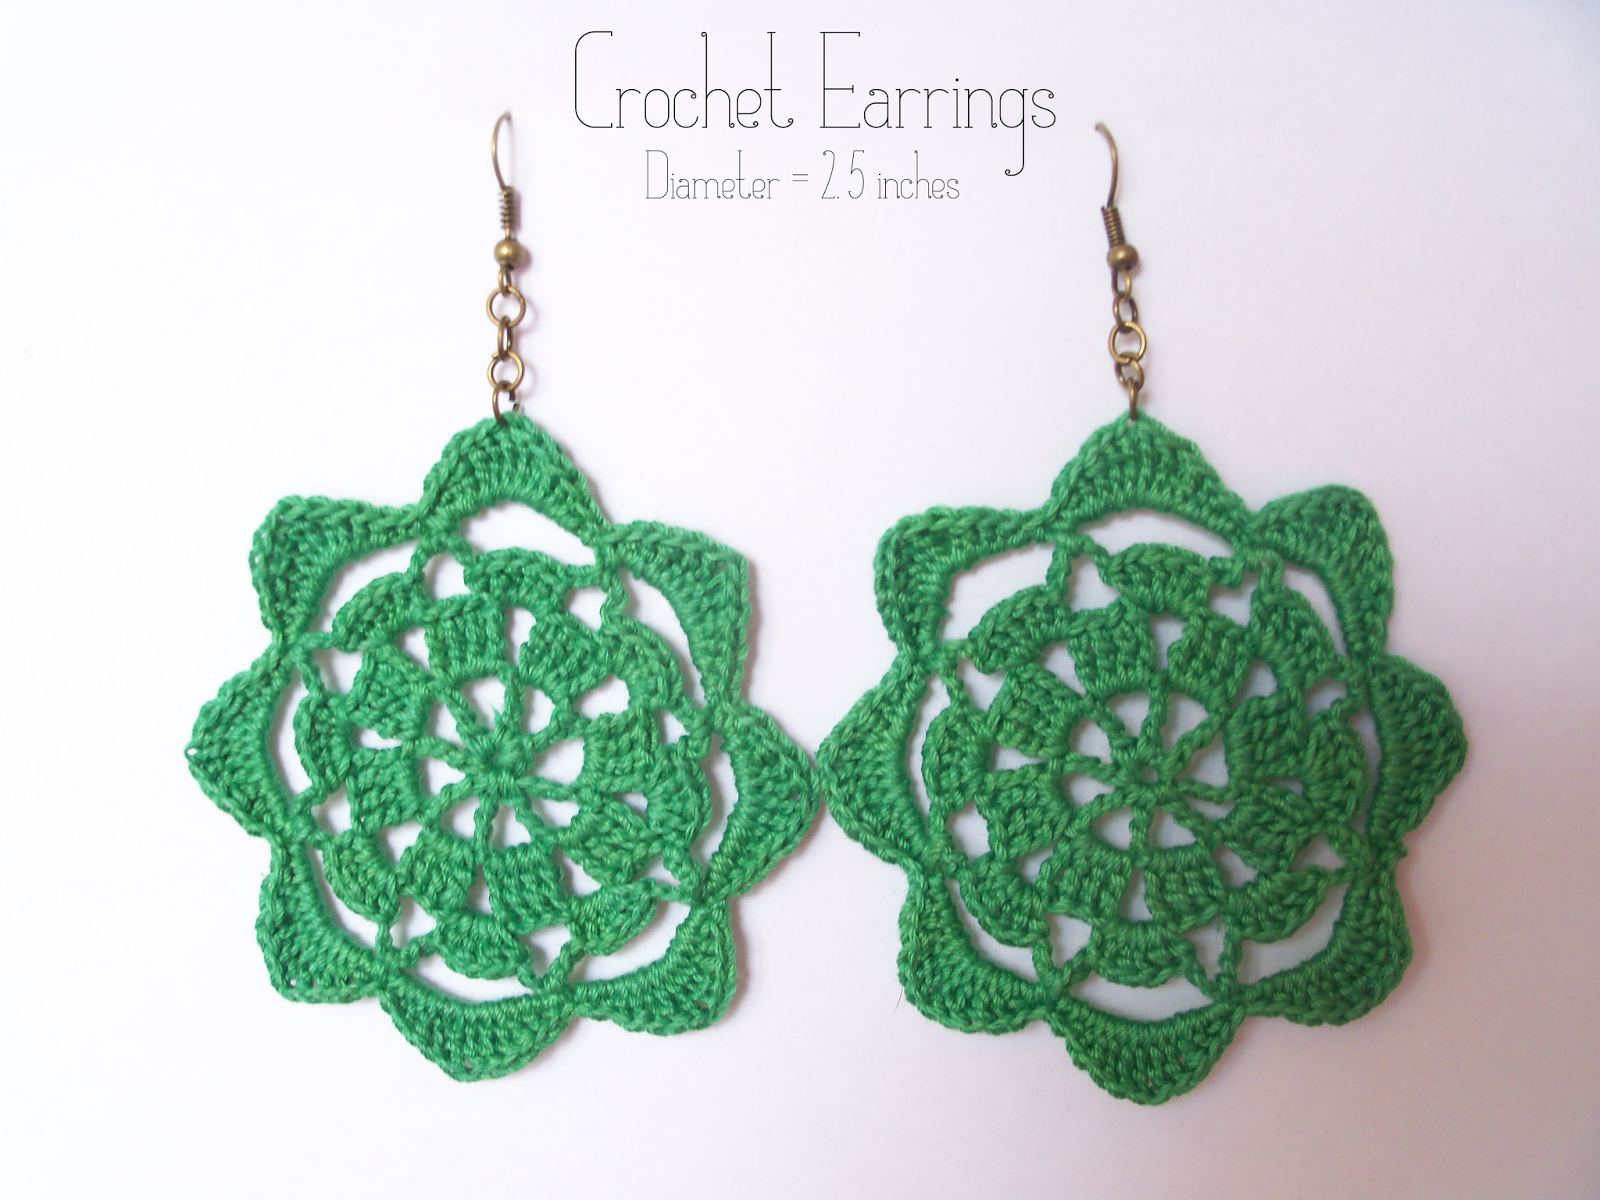 Crochet earrings pattern 3 crochet earrings pattern crochet dandelion sunrise crochet earrings pattern 3 dt1010fo